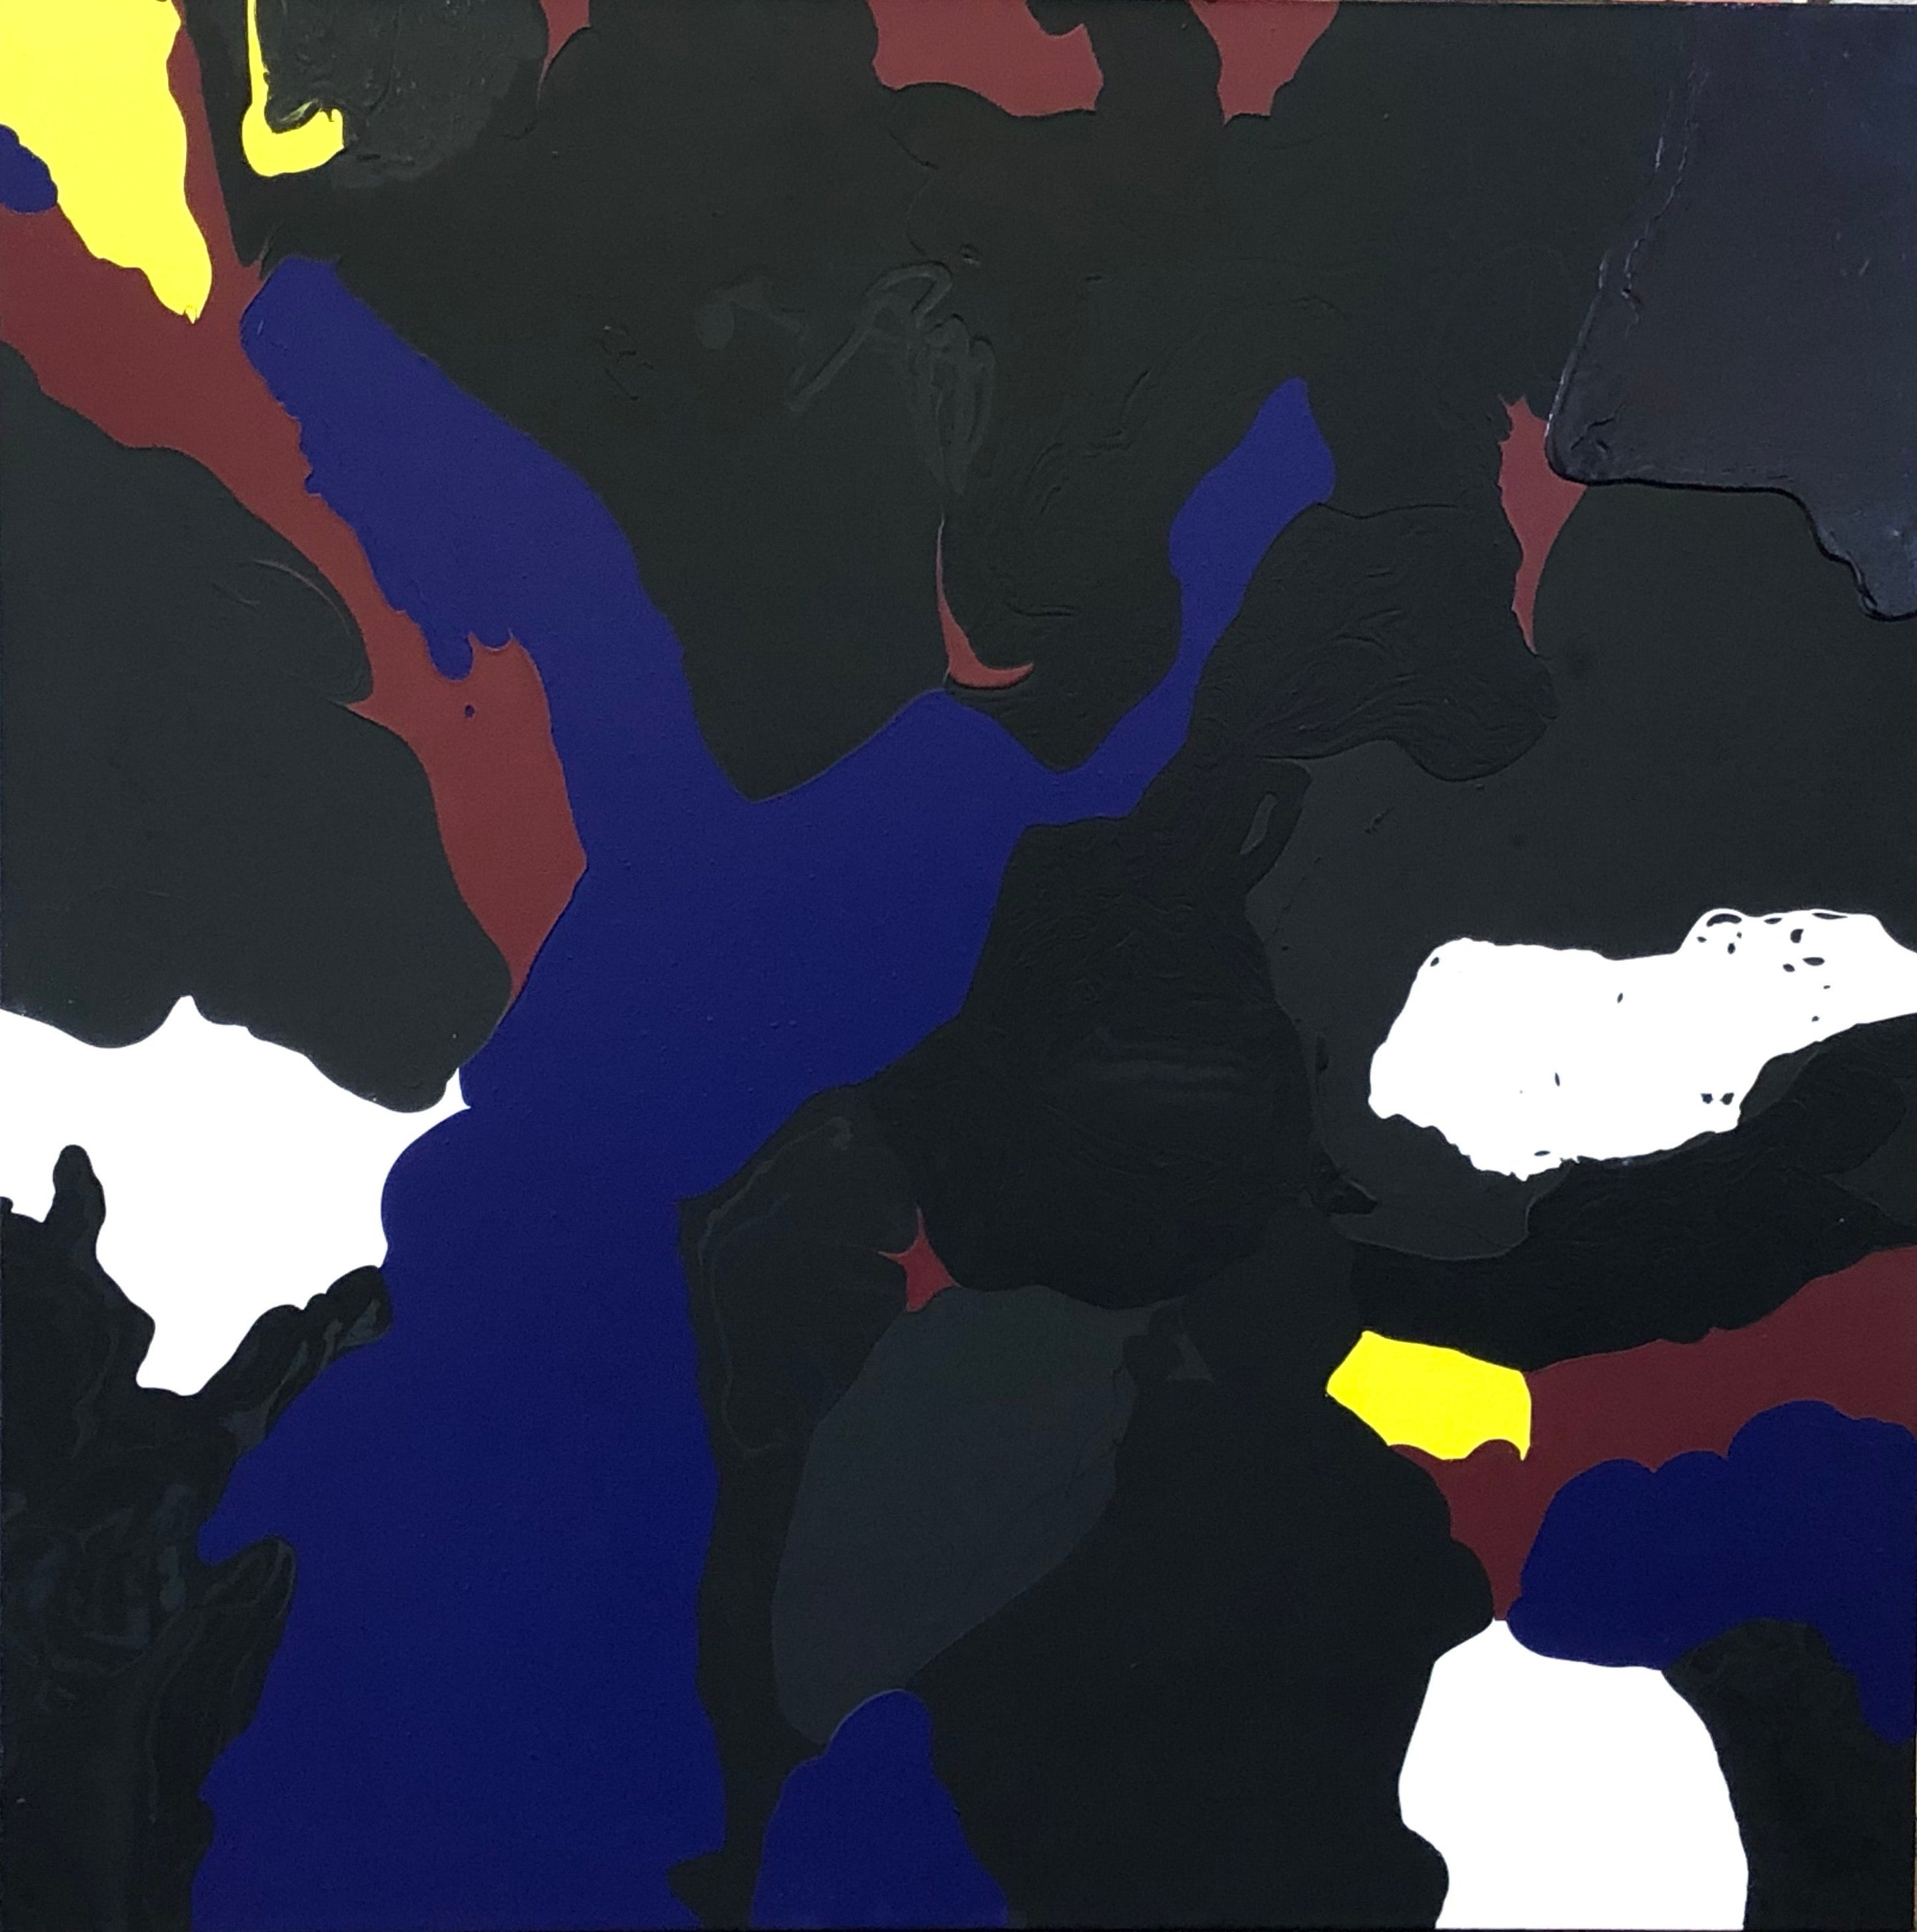 Scorched abstract painting by Glenn Green brown, blue, black, yellow, red, white